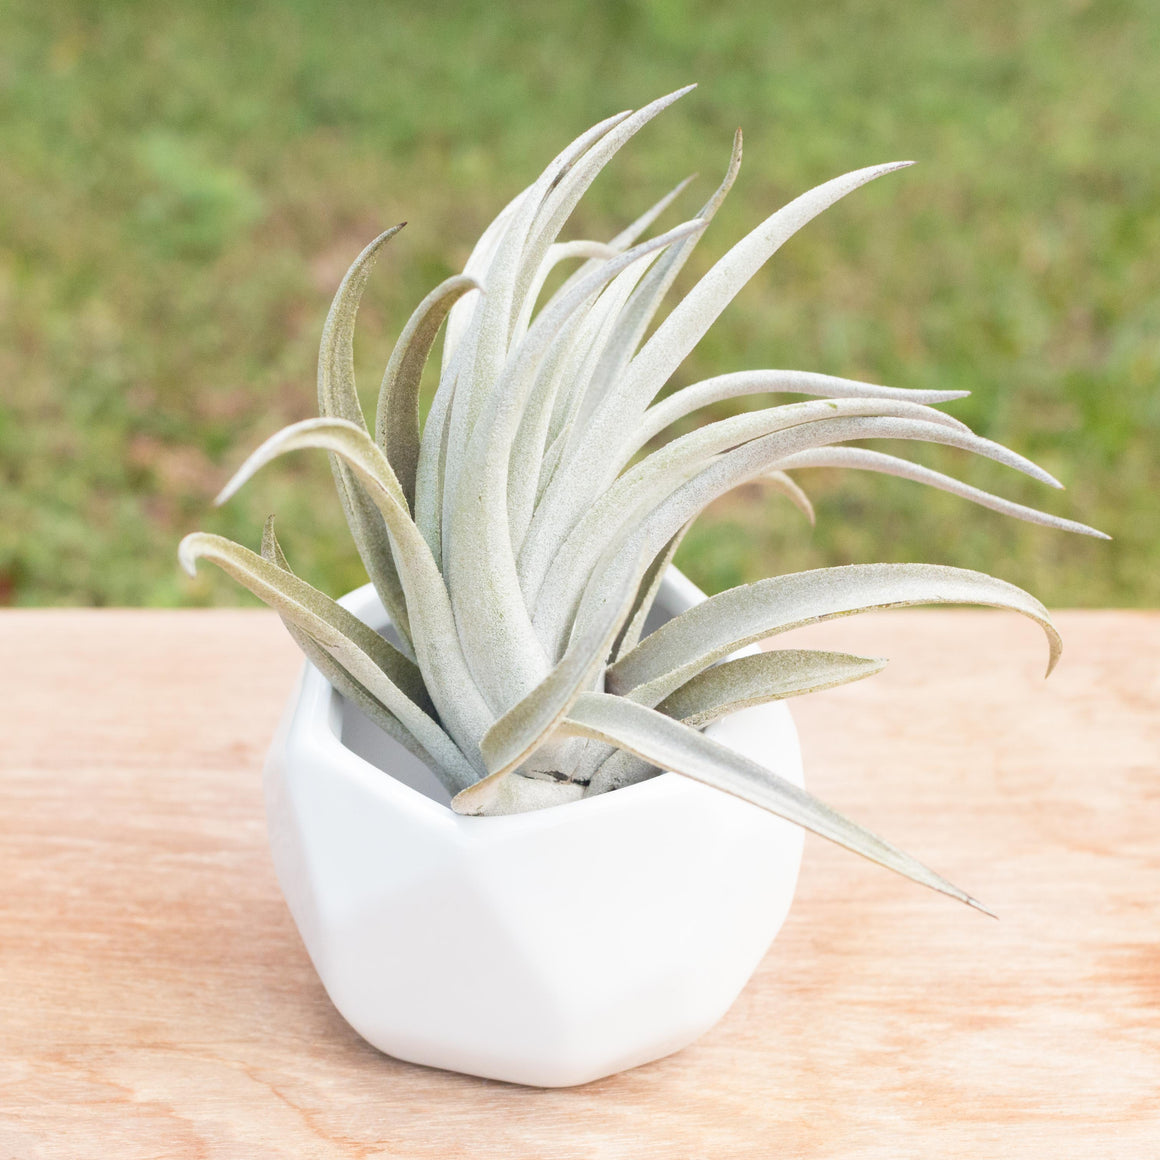 SALE - Large Tillandsia Harrisii Air Plants - Set of 10, 15, or 20 Plants - 60% Off